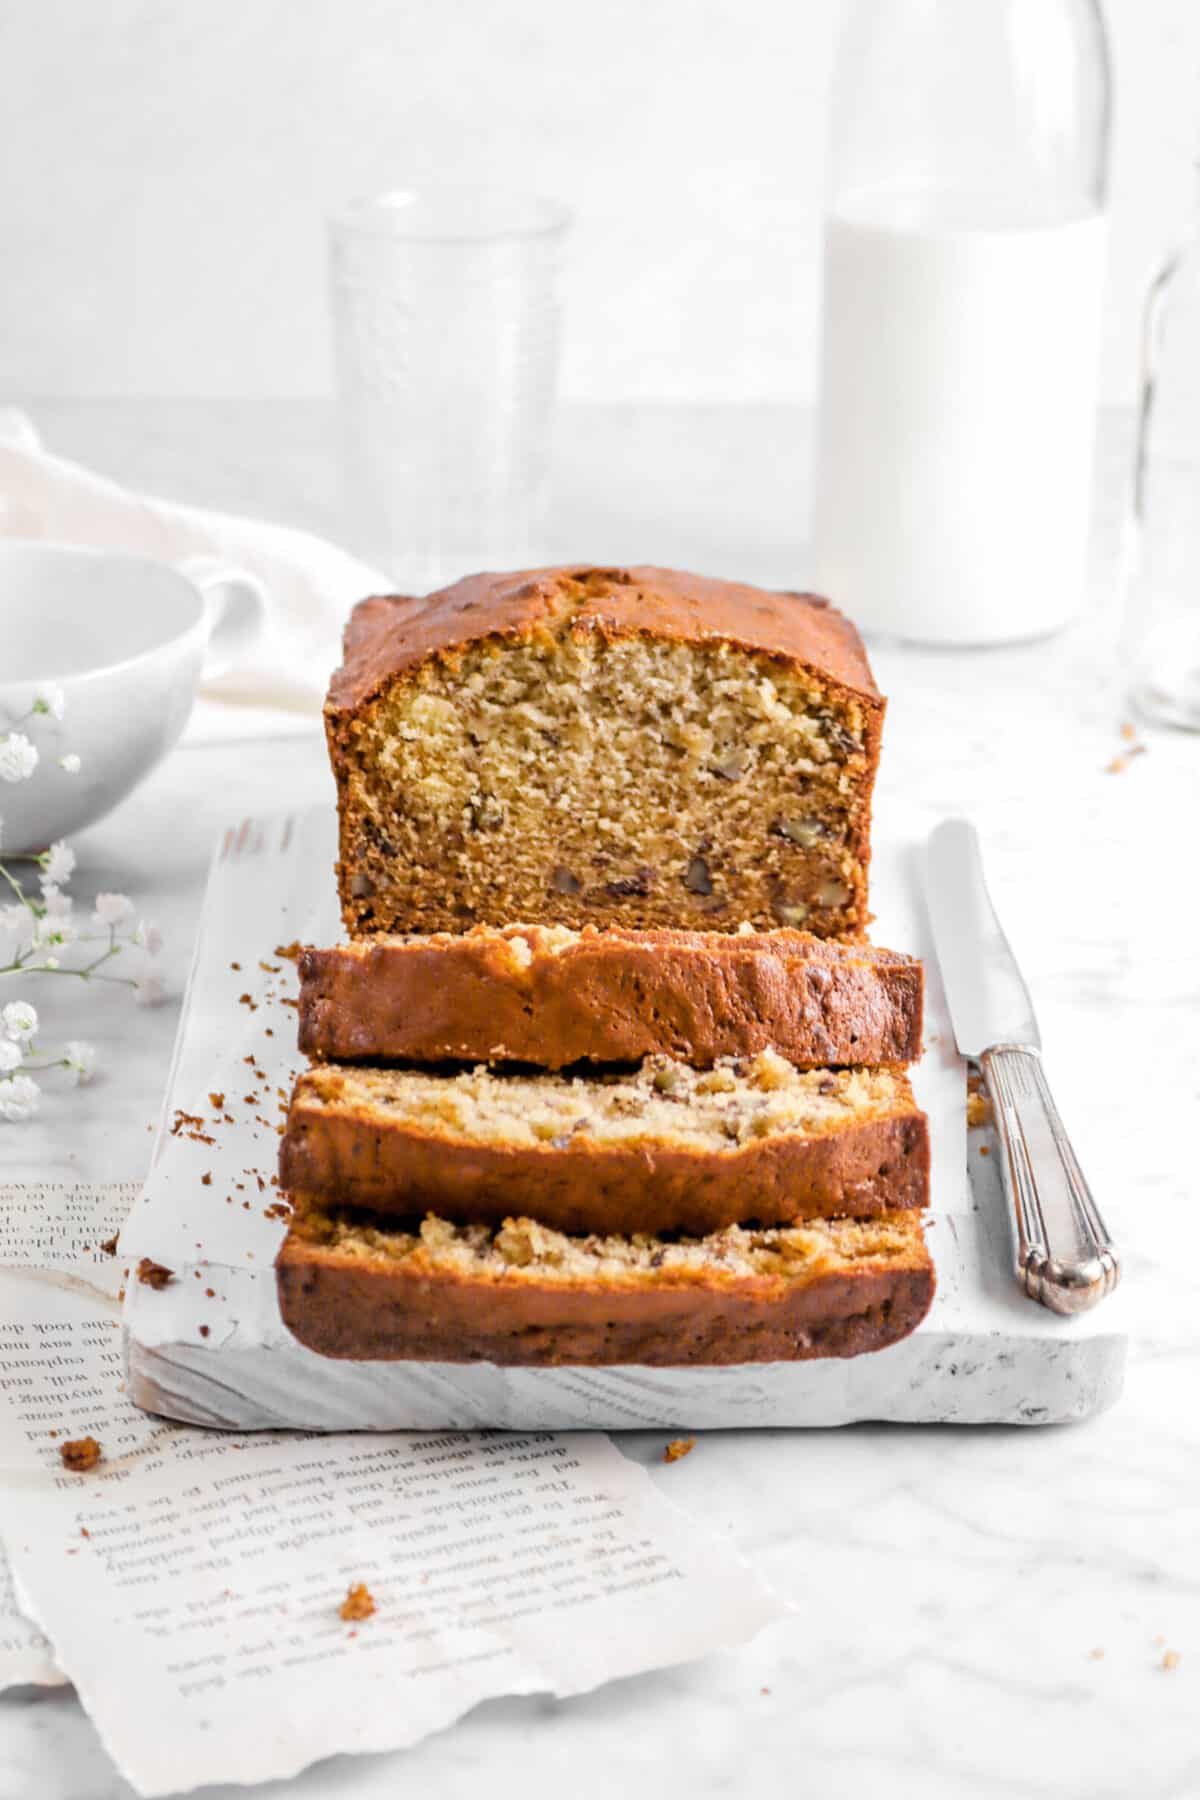 four slices of bananabread with loaf behind on white board with knife, napkin, and milk